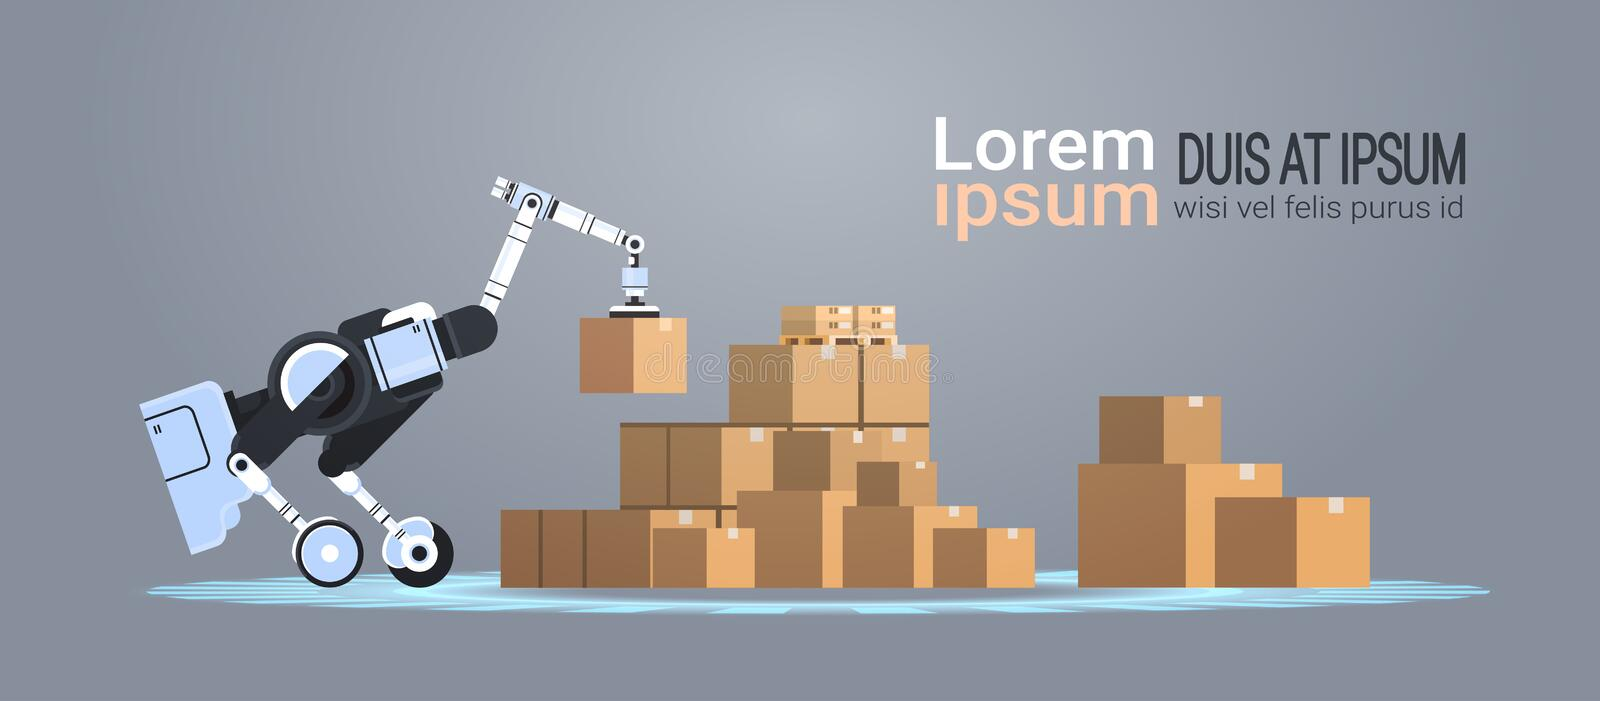 Robotic worker loading cardboard boxes hi-tech smart factory warehouse logistics automation technology concept modern. Robot cartoon character flat copy space royalty free illustration